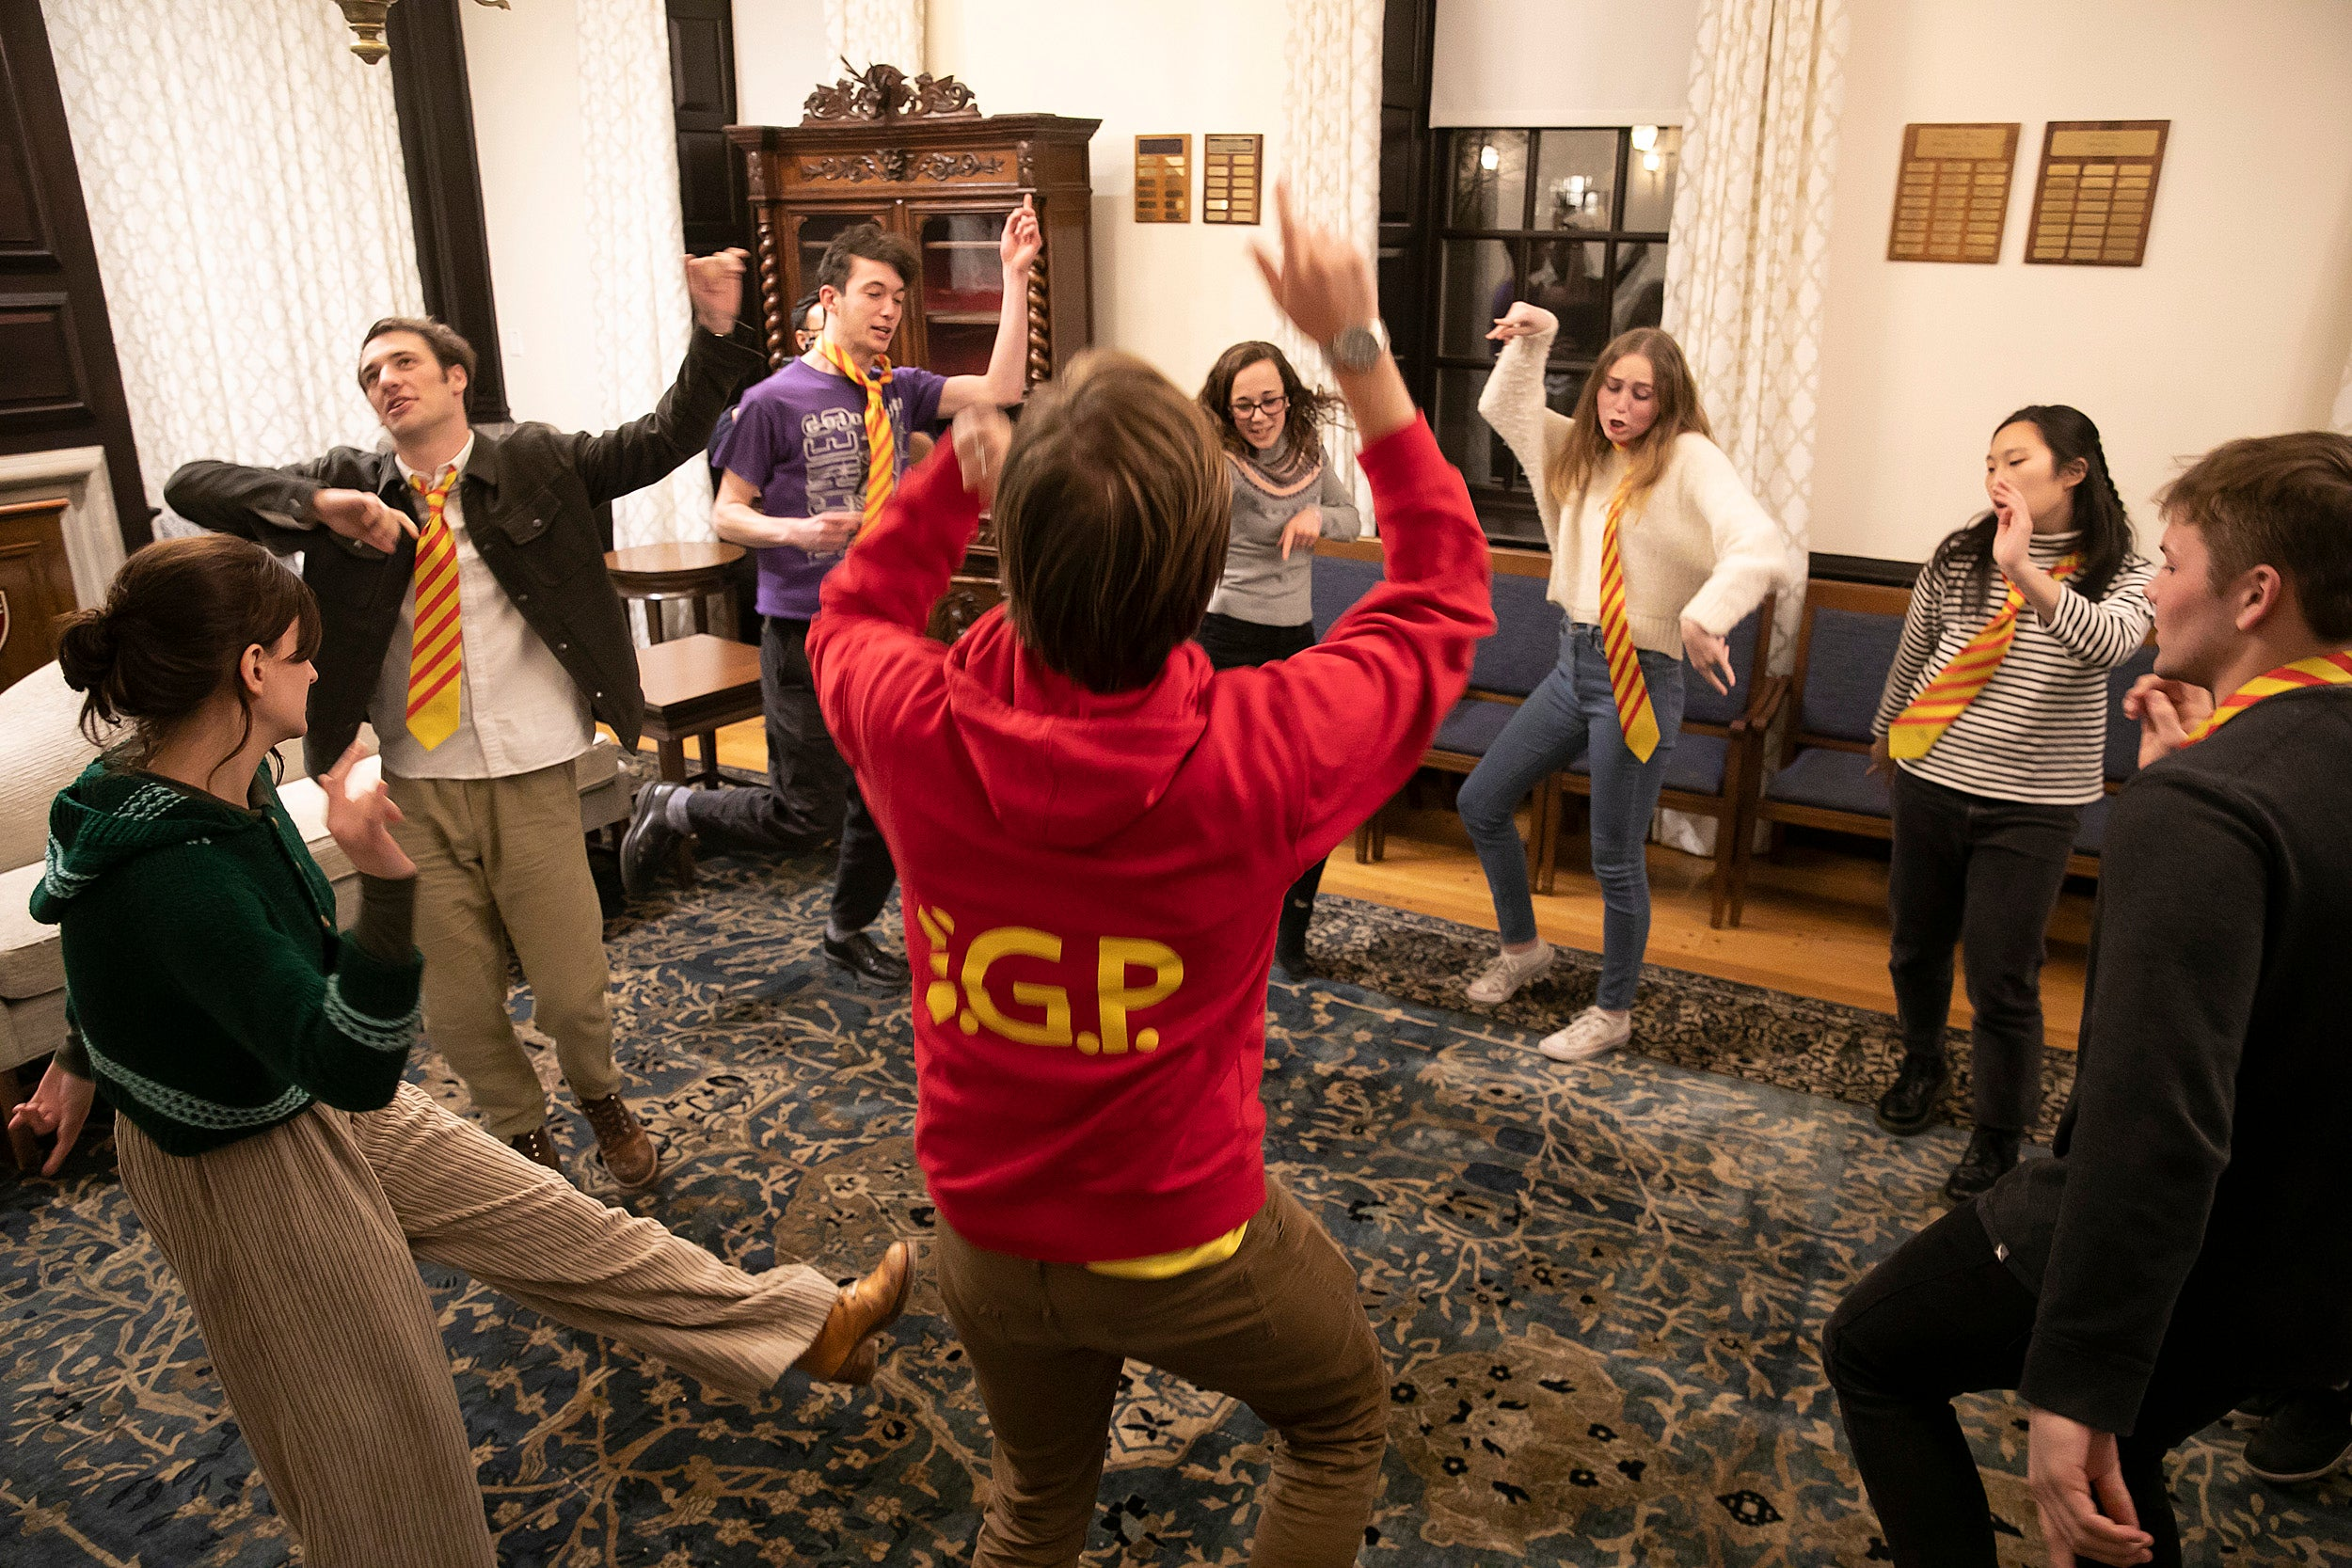 Students in a circle strike poses to practice their improv techniques.